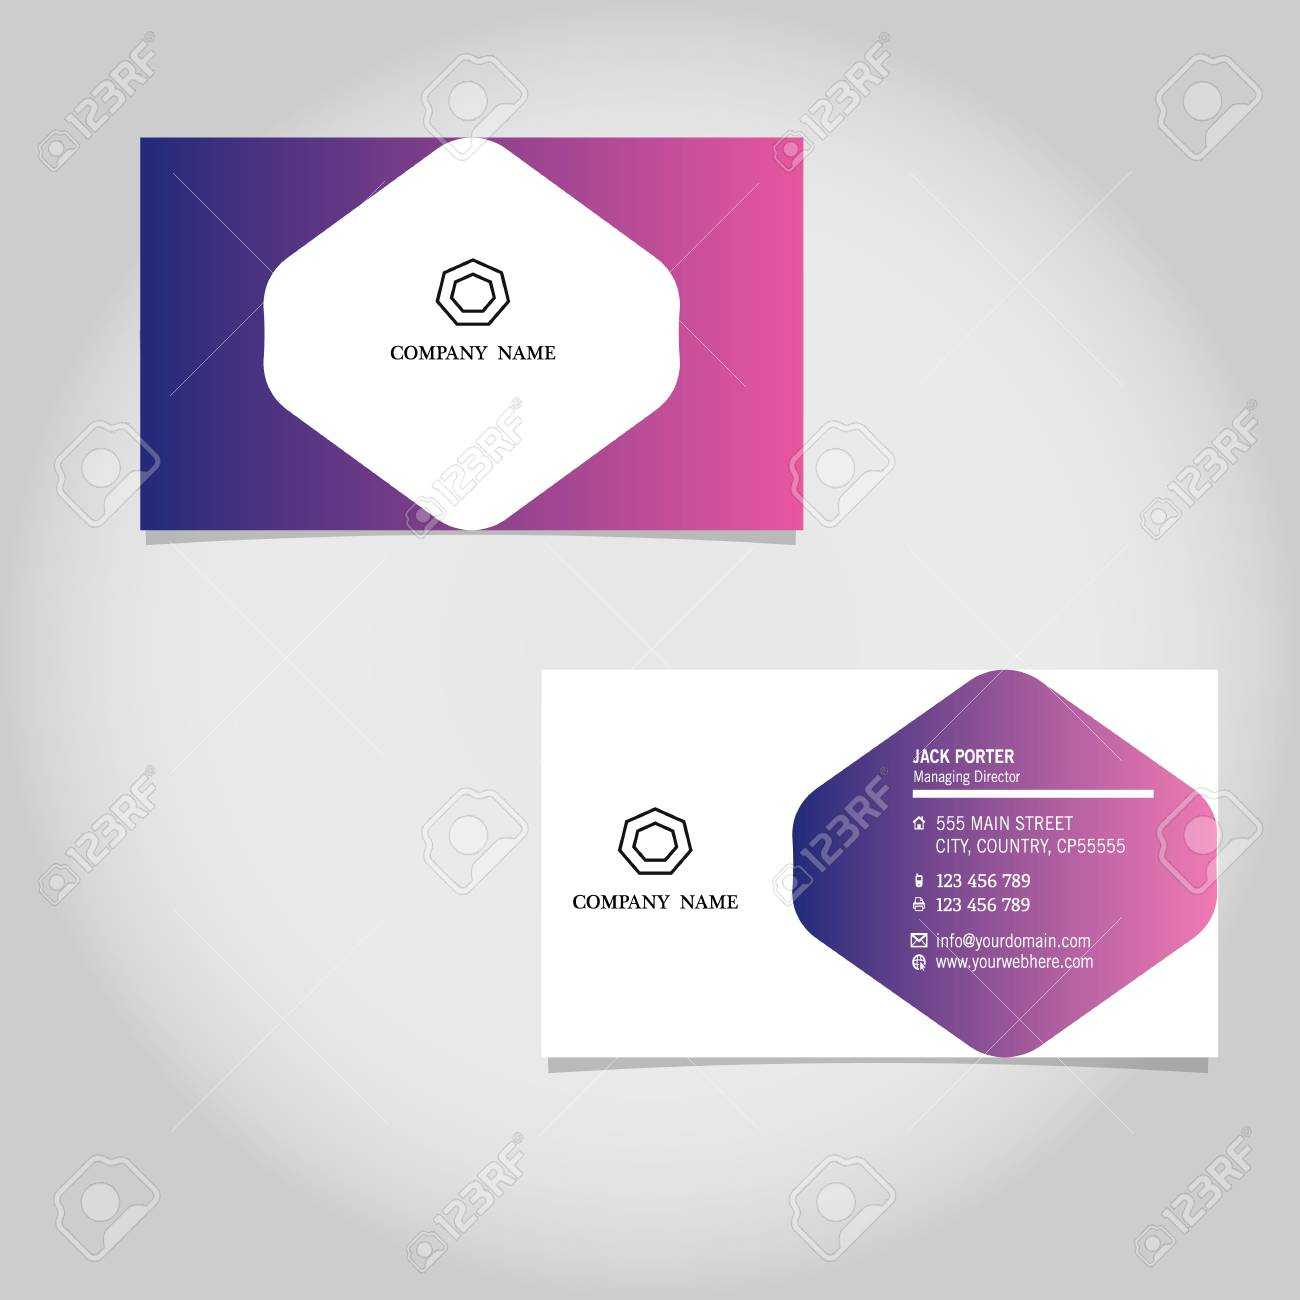 Vector Business Card Template Design Adobe Illustrator Regarding Adobe Illustrator Business Card Template